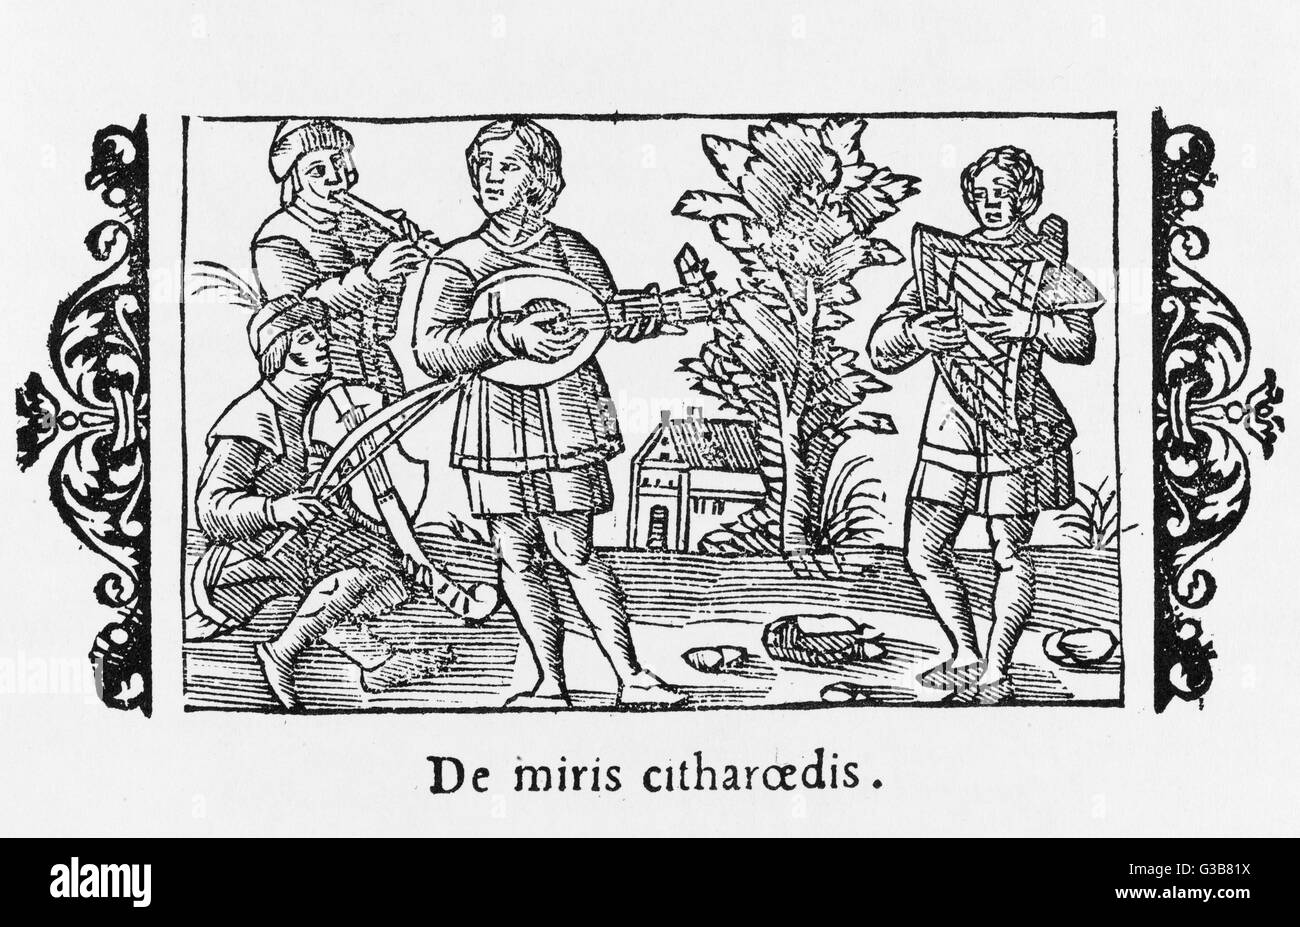 A piper performs with players  of three types of stringed instruments - a rebec, a lute  and a harp.      Date: - Stock Image